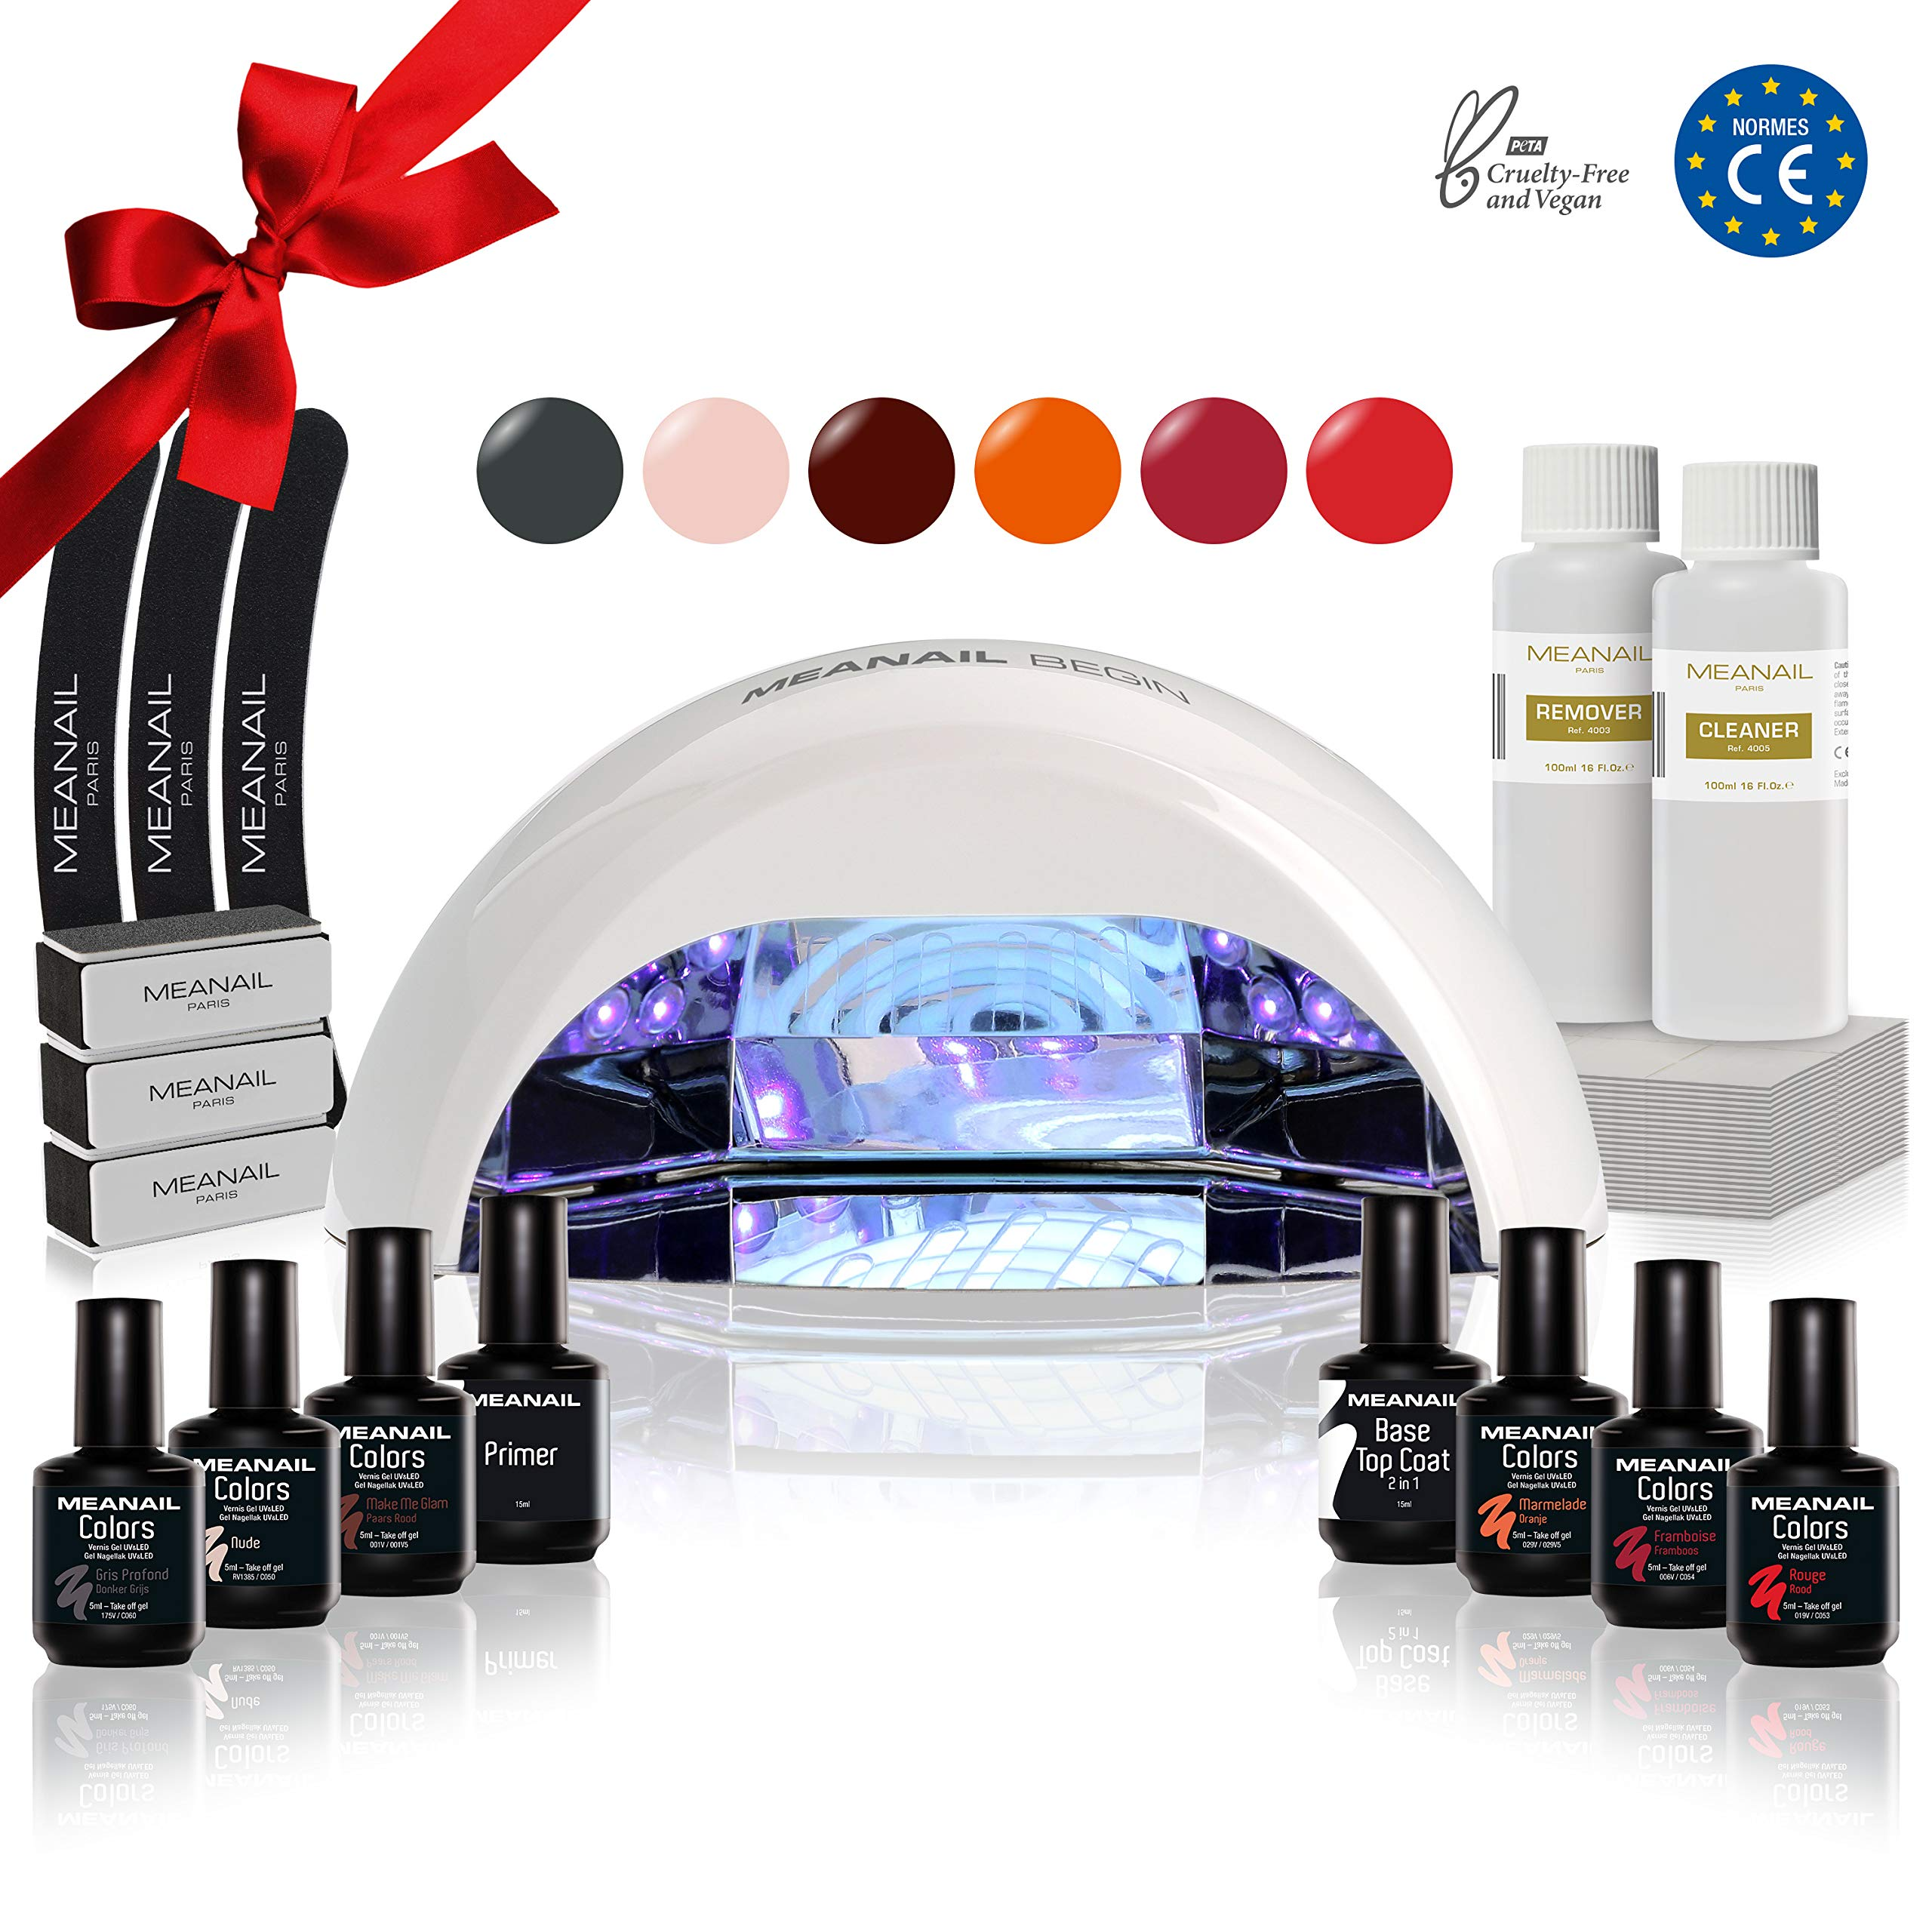 KIT MANUCURE VERNIS SEMI PERMANENT • KIT PROFESSIONNEL BEGIN SÉCHAGE 30s • Lampe UV/LED 18W Vernis Gel Polish Base Top Coat Primer Accessoires Manucure Pédicure Semipermanente Vegan Cruelty Free product image